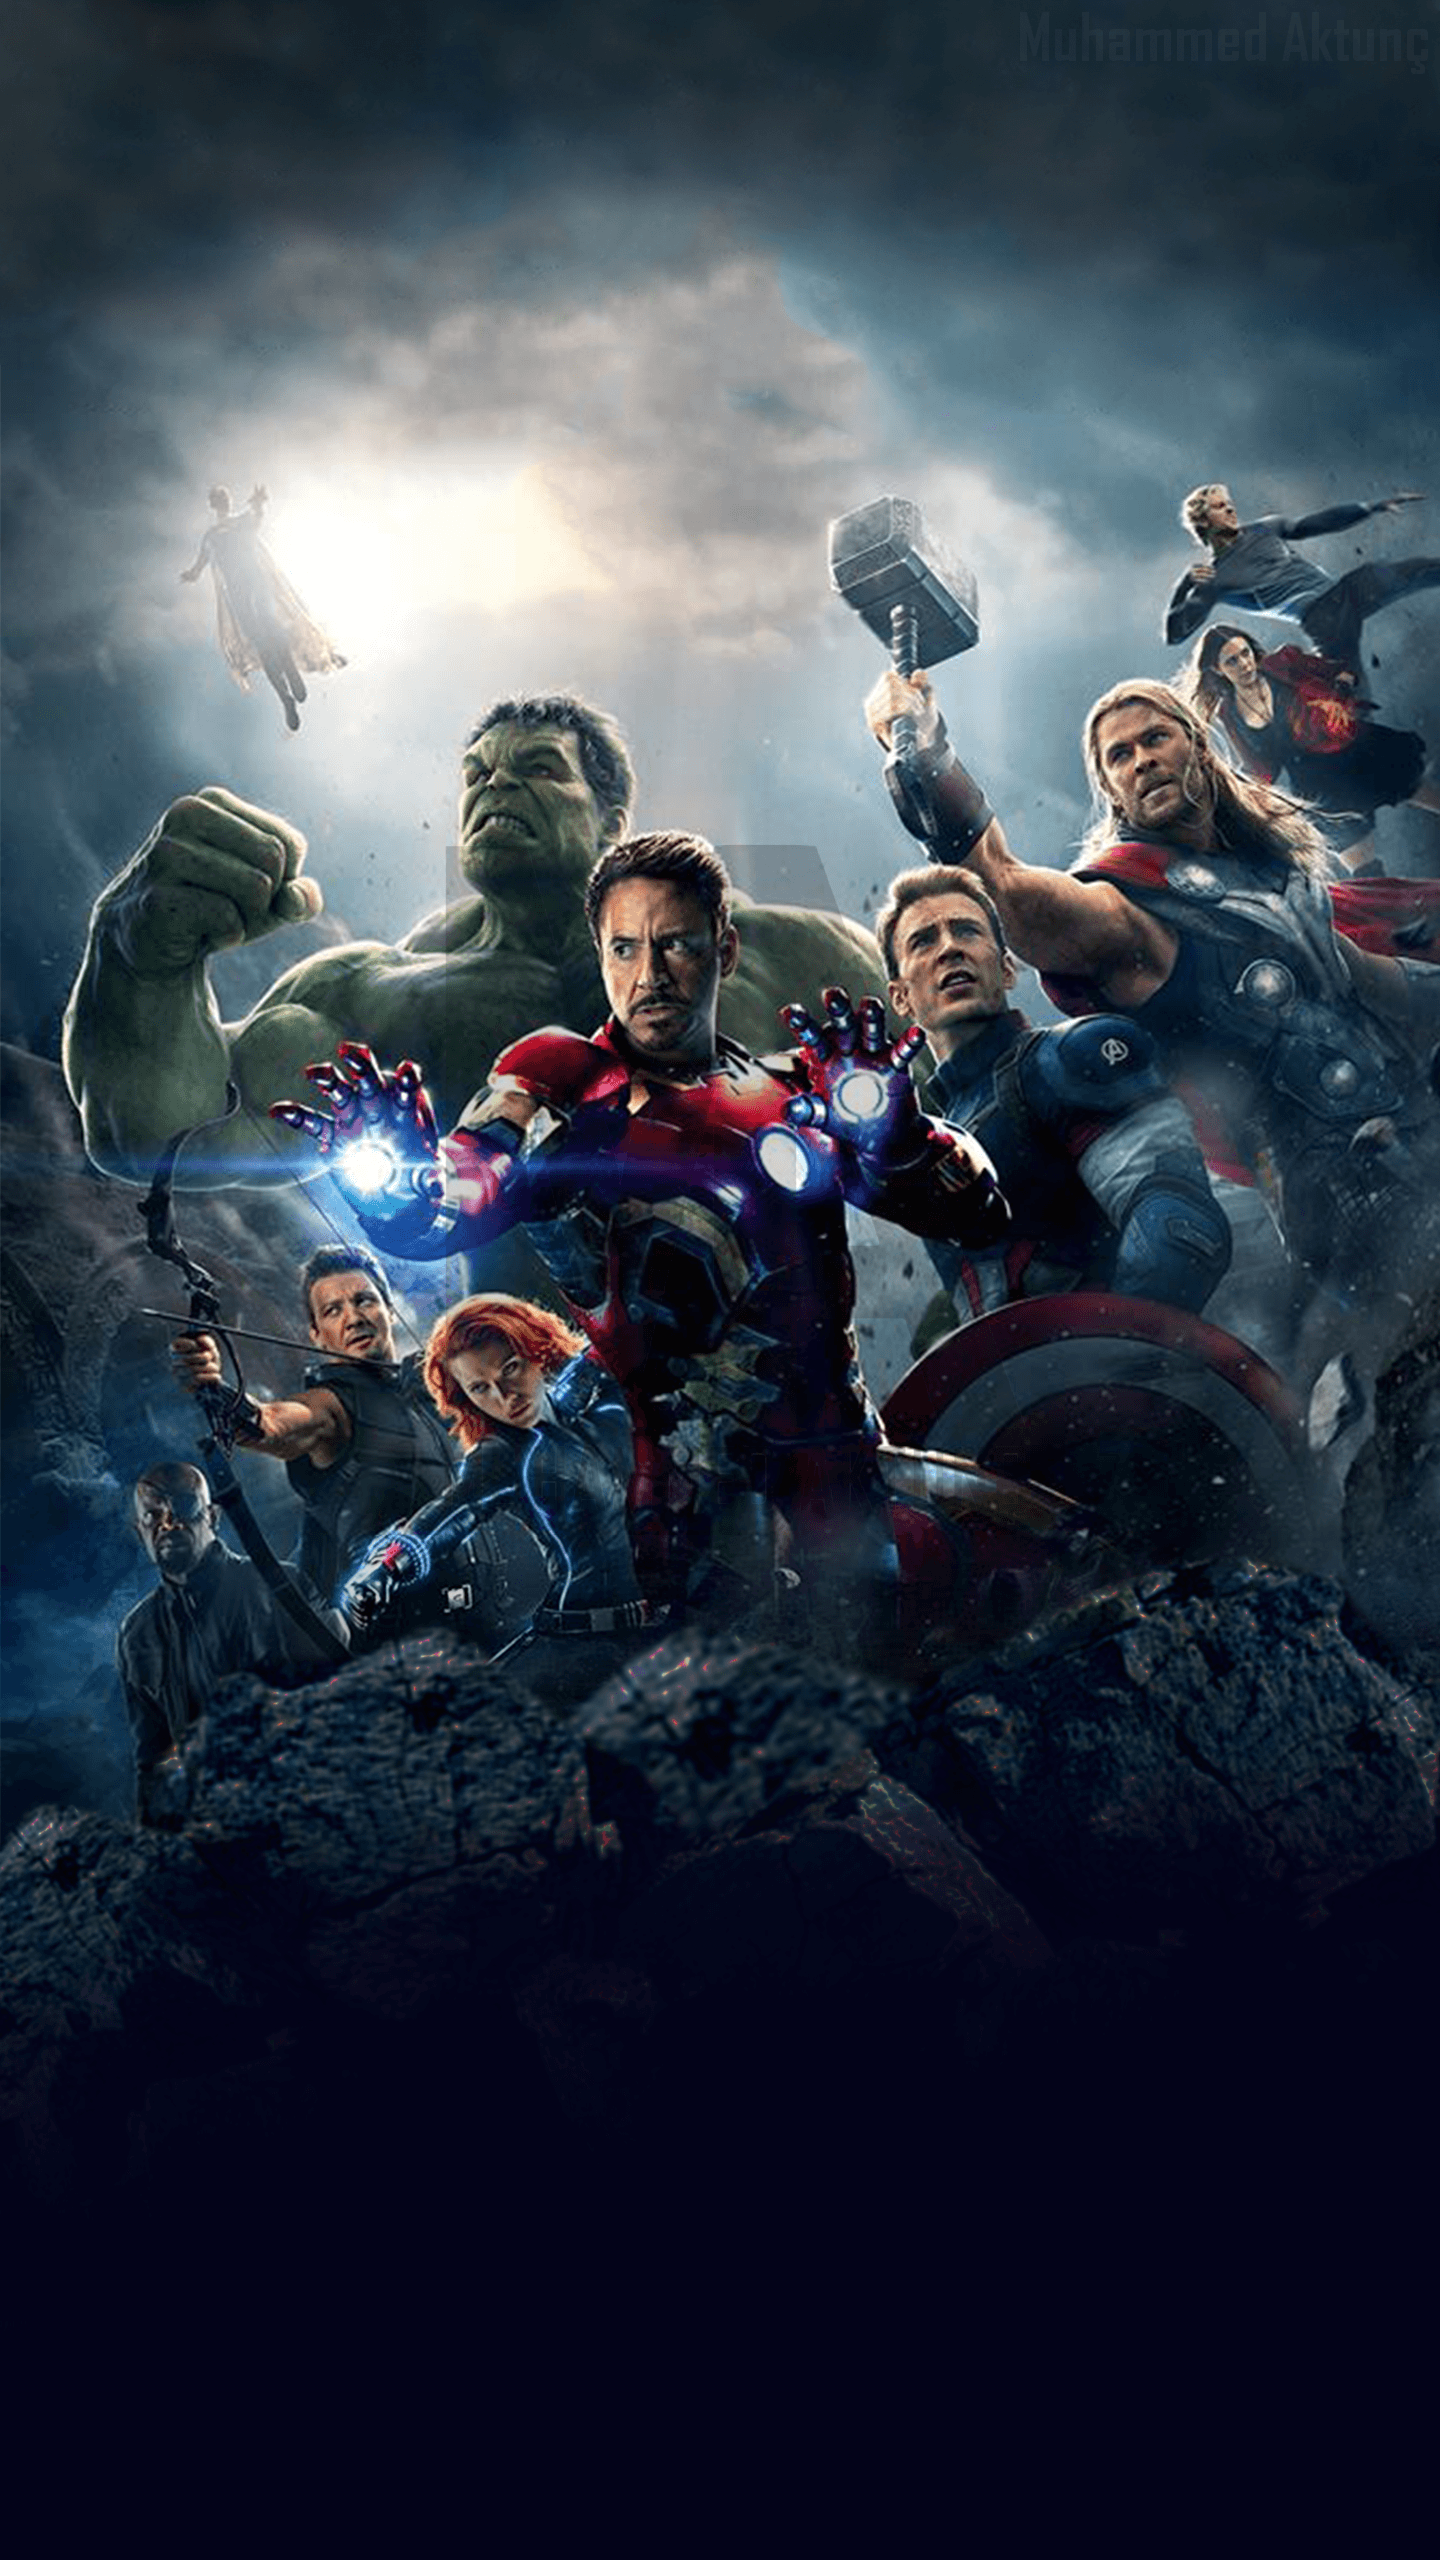 Marvel Phone Wallpapers   Top Marvel Phone Backgrounds 1440x2560